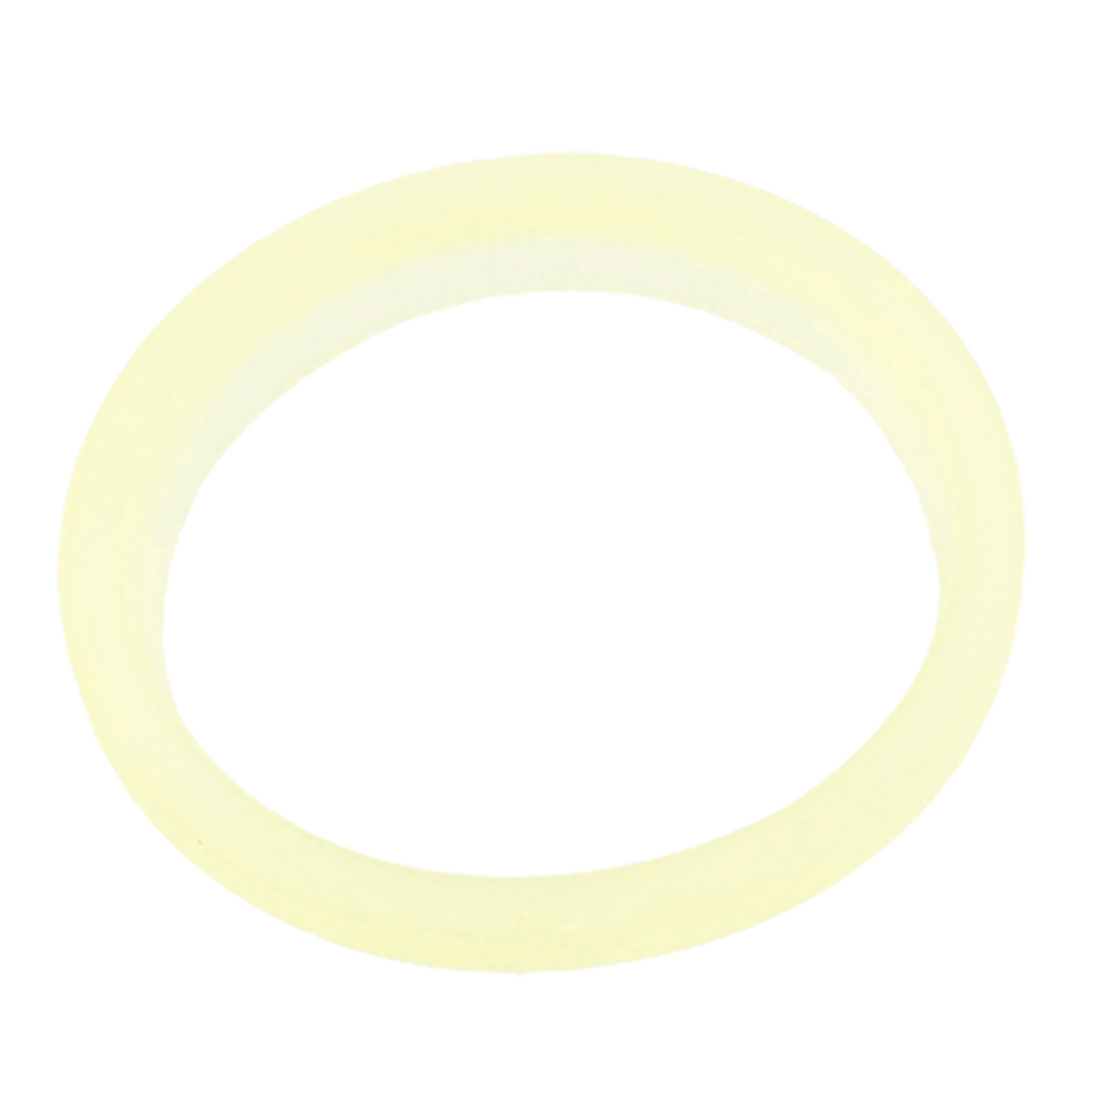 J Type Beige Polyurethane 70 x 84 x 6 x 12mm Ring Oil Dust Seal